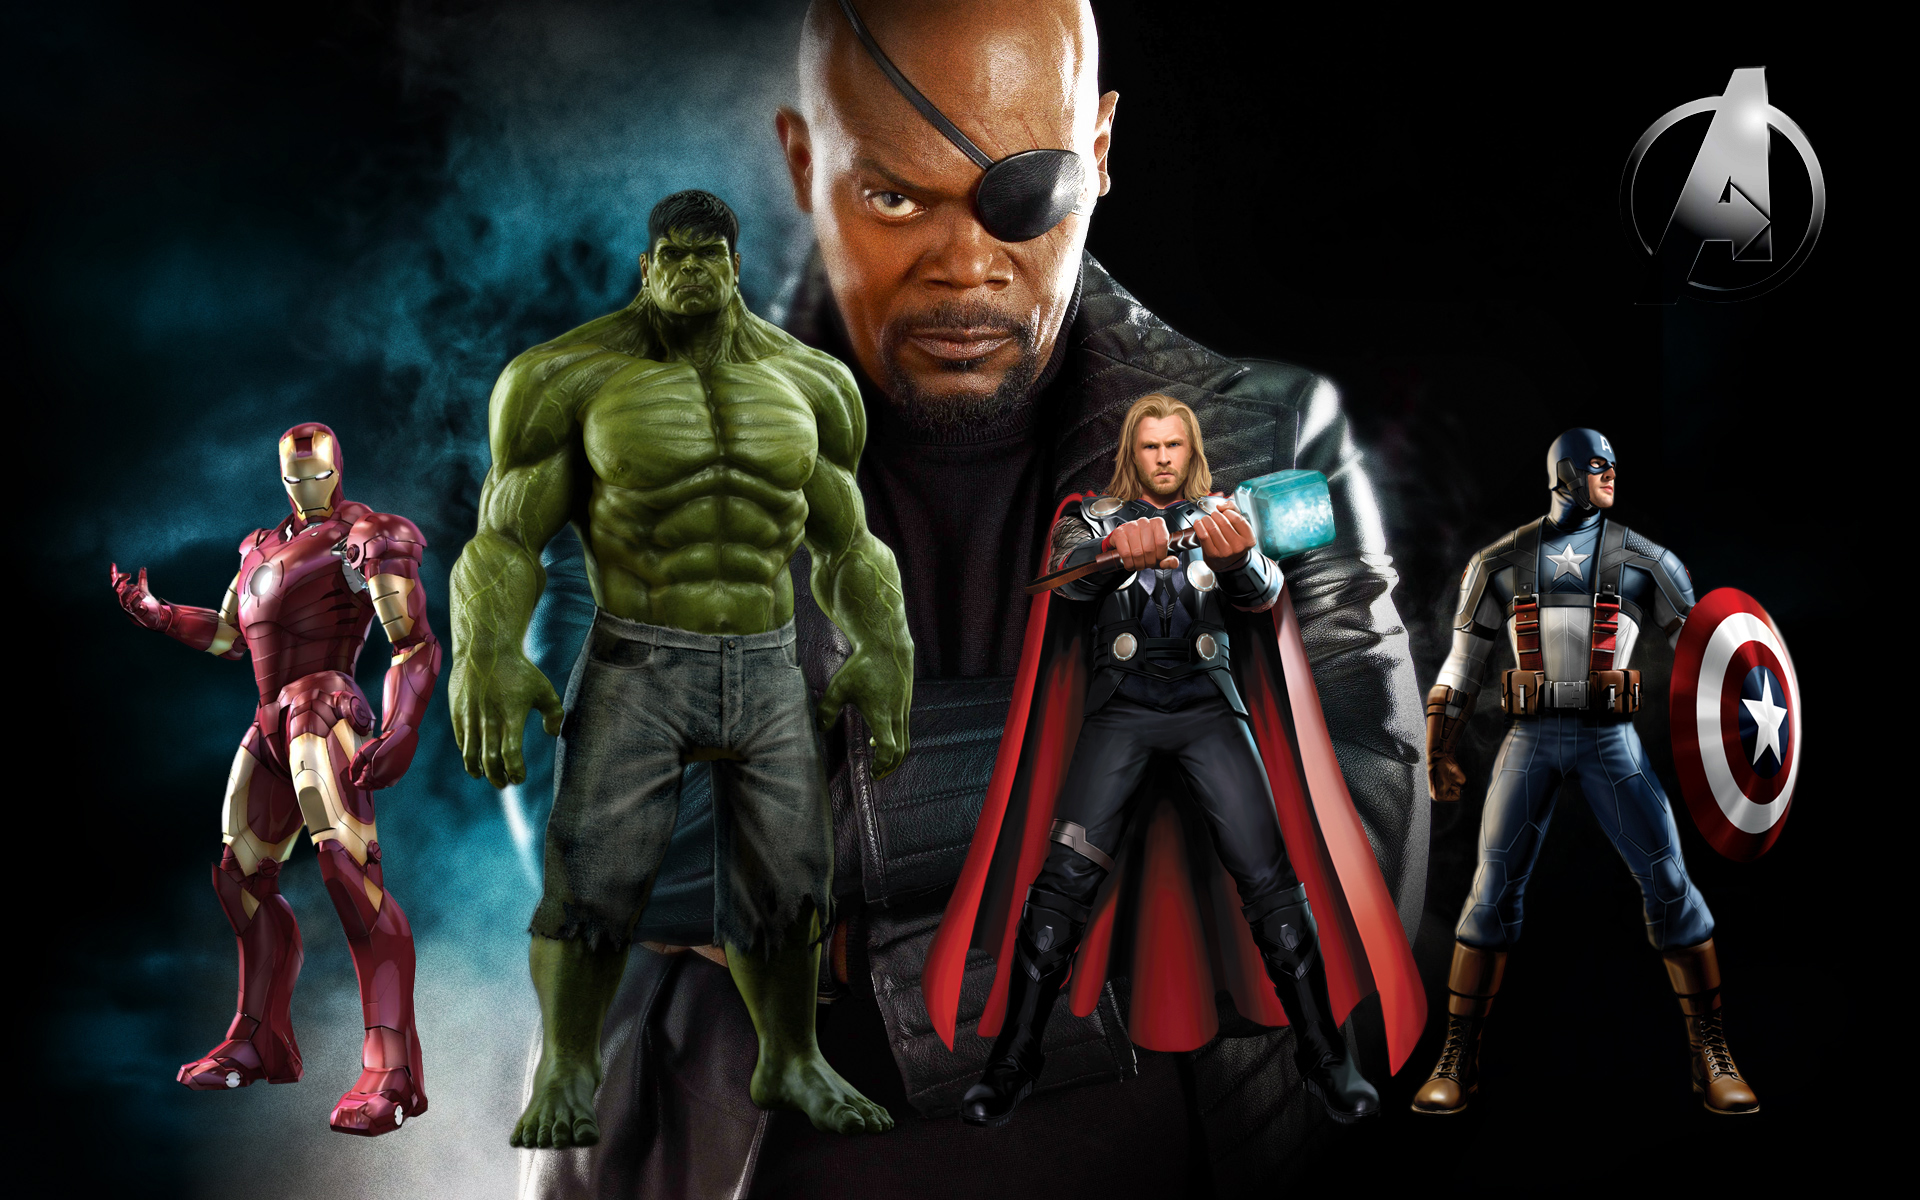 The Avengers | 1920 x 1200 | Download | Close